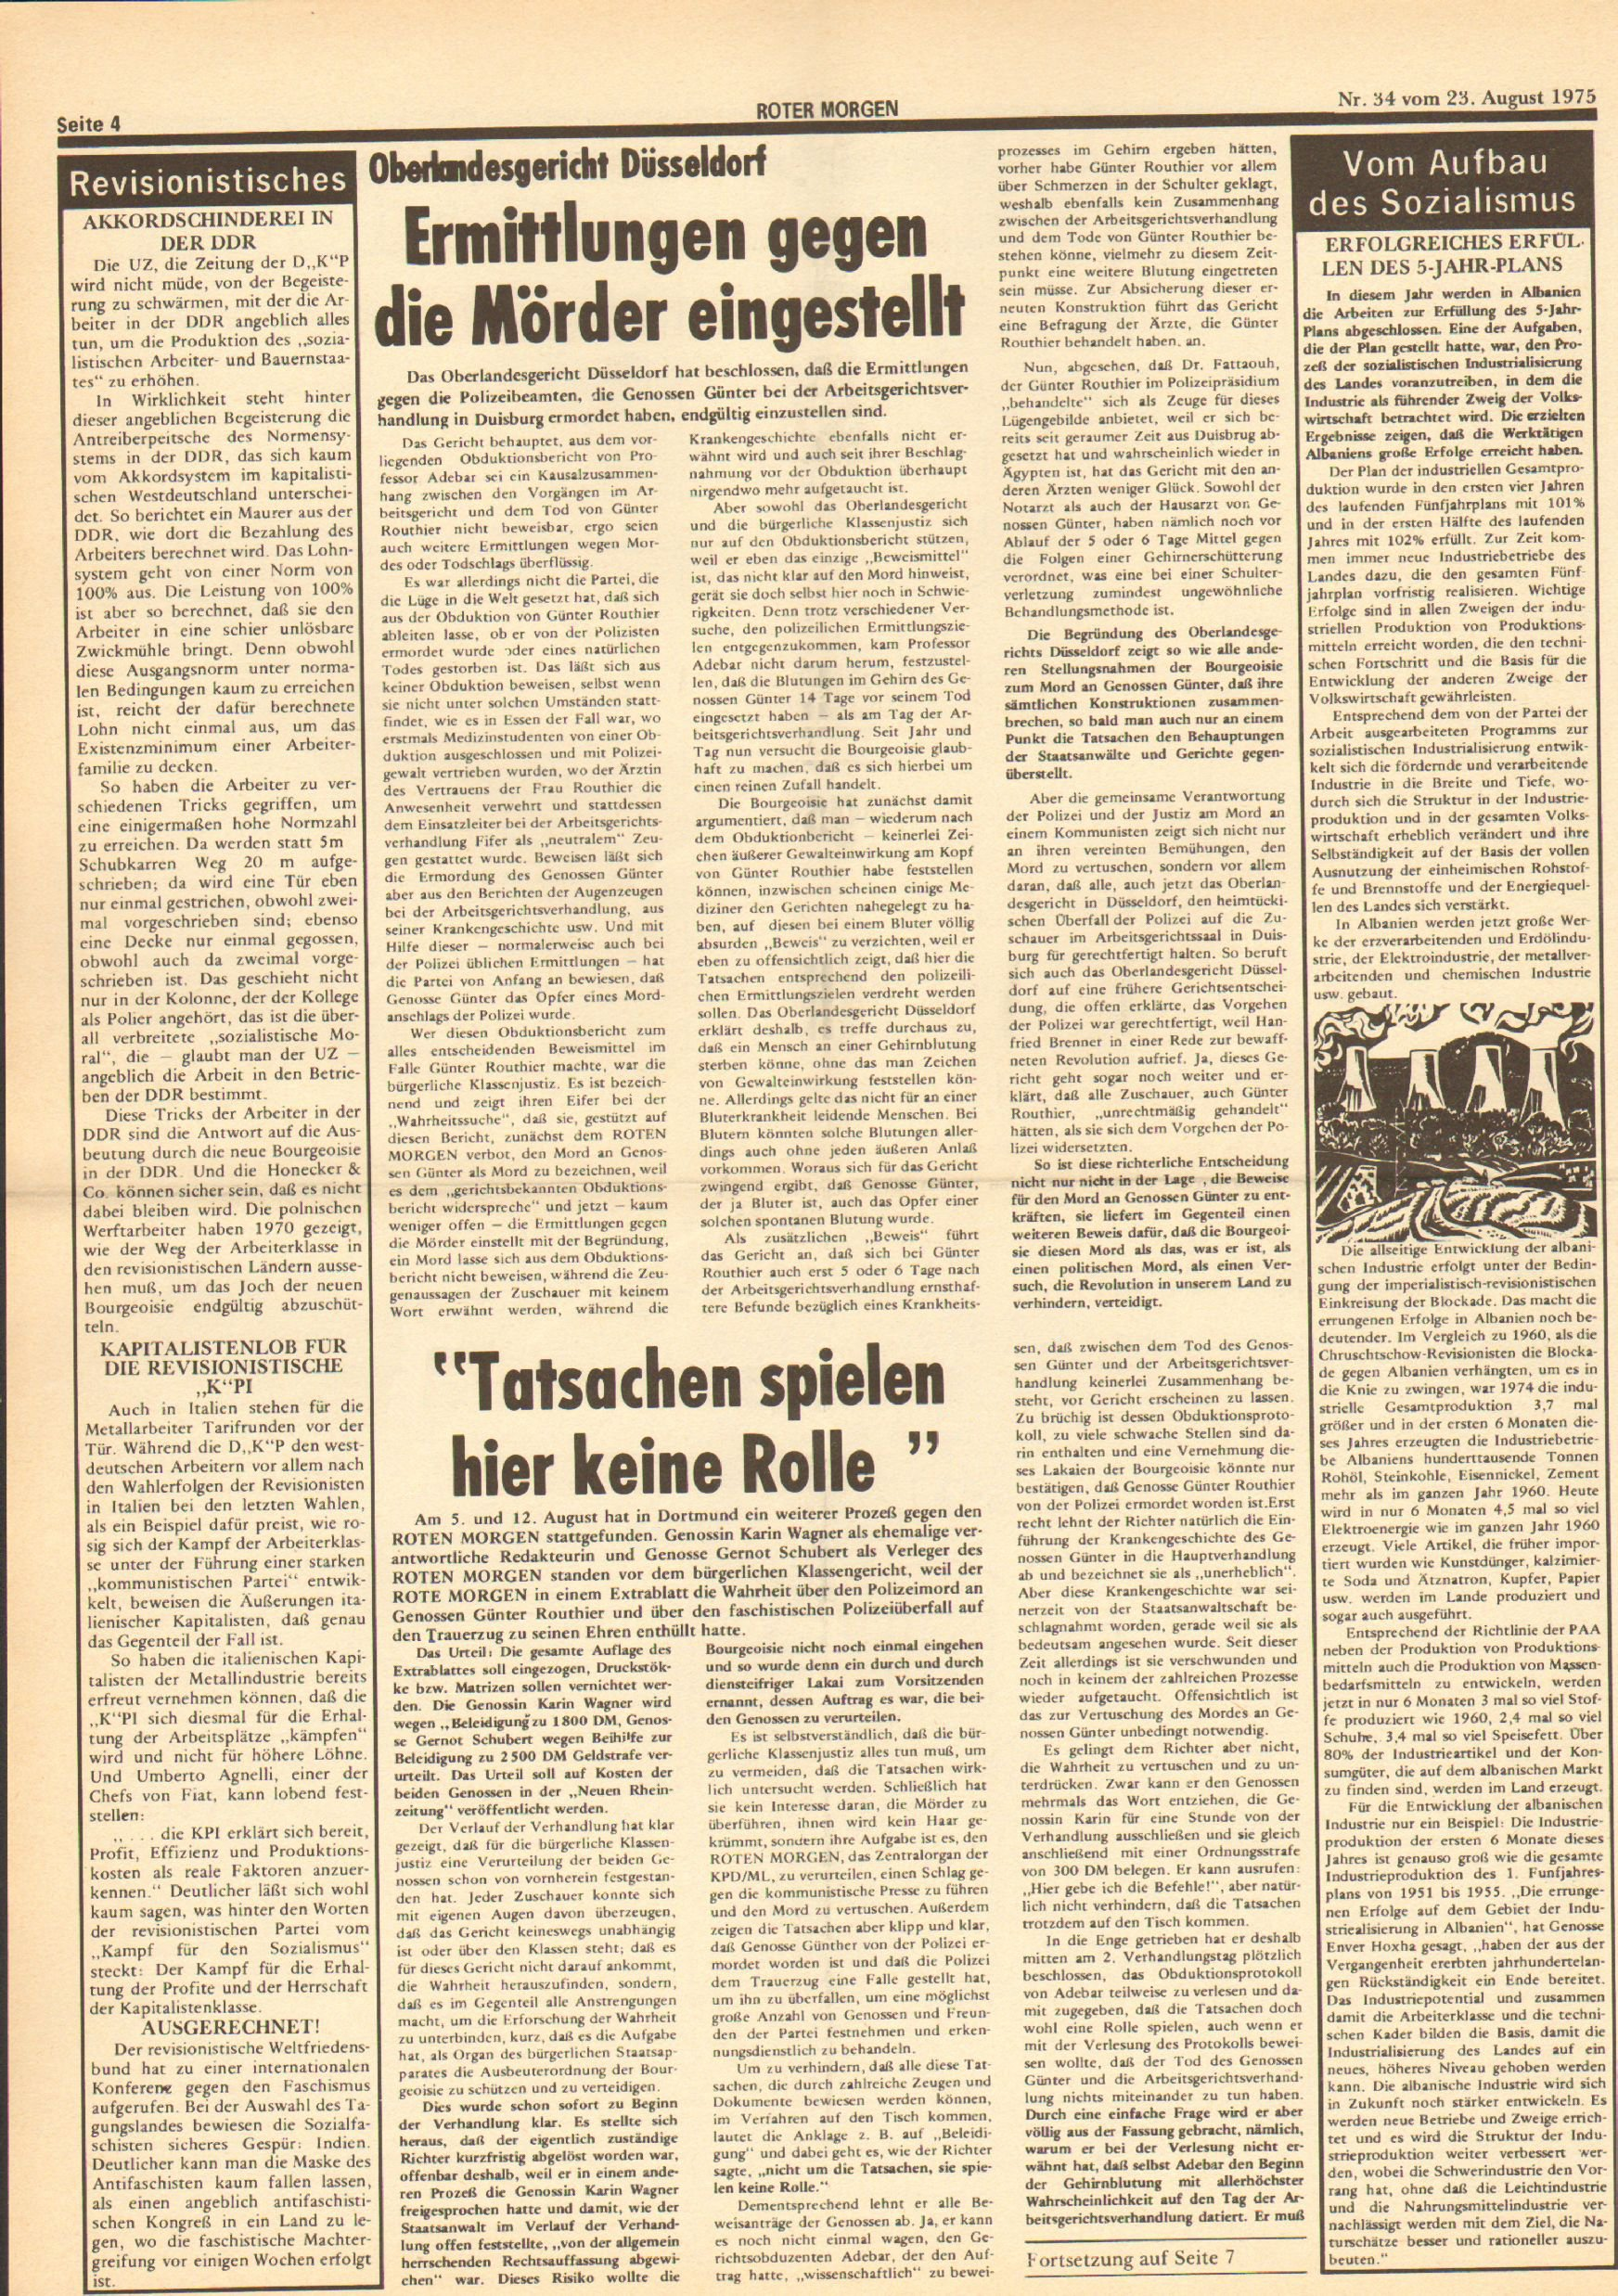 Roter Morgen, 9. Jg., 23. August 1975, Nr. 34, Seite 4